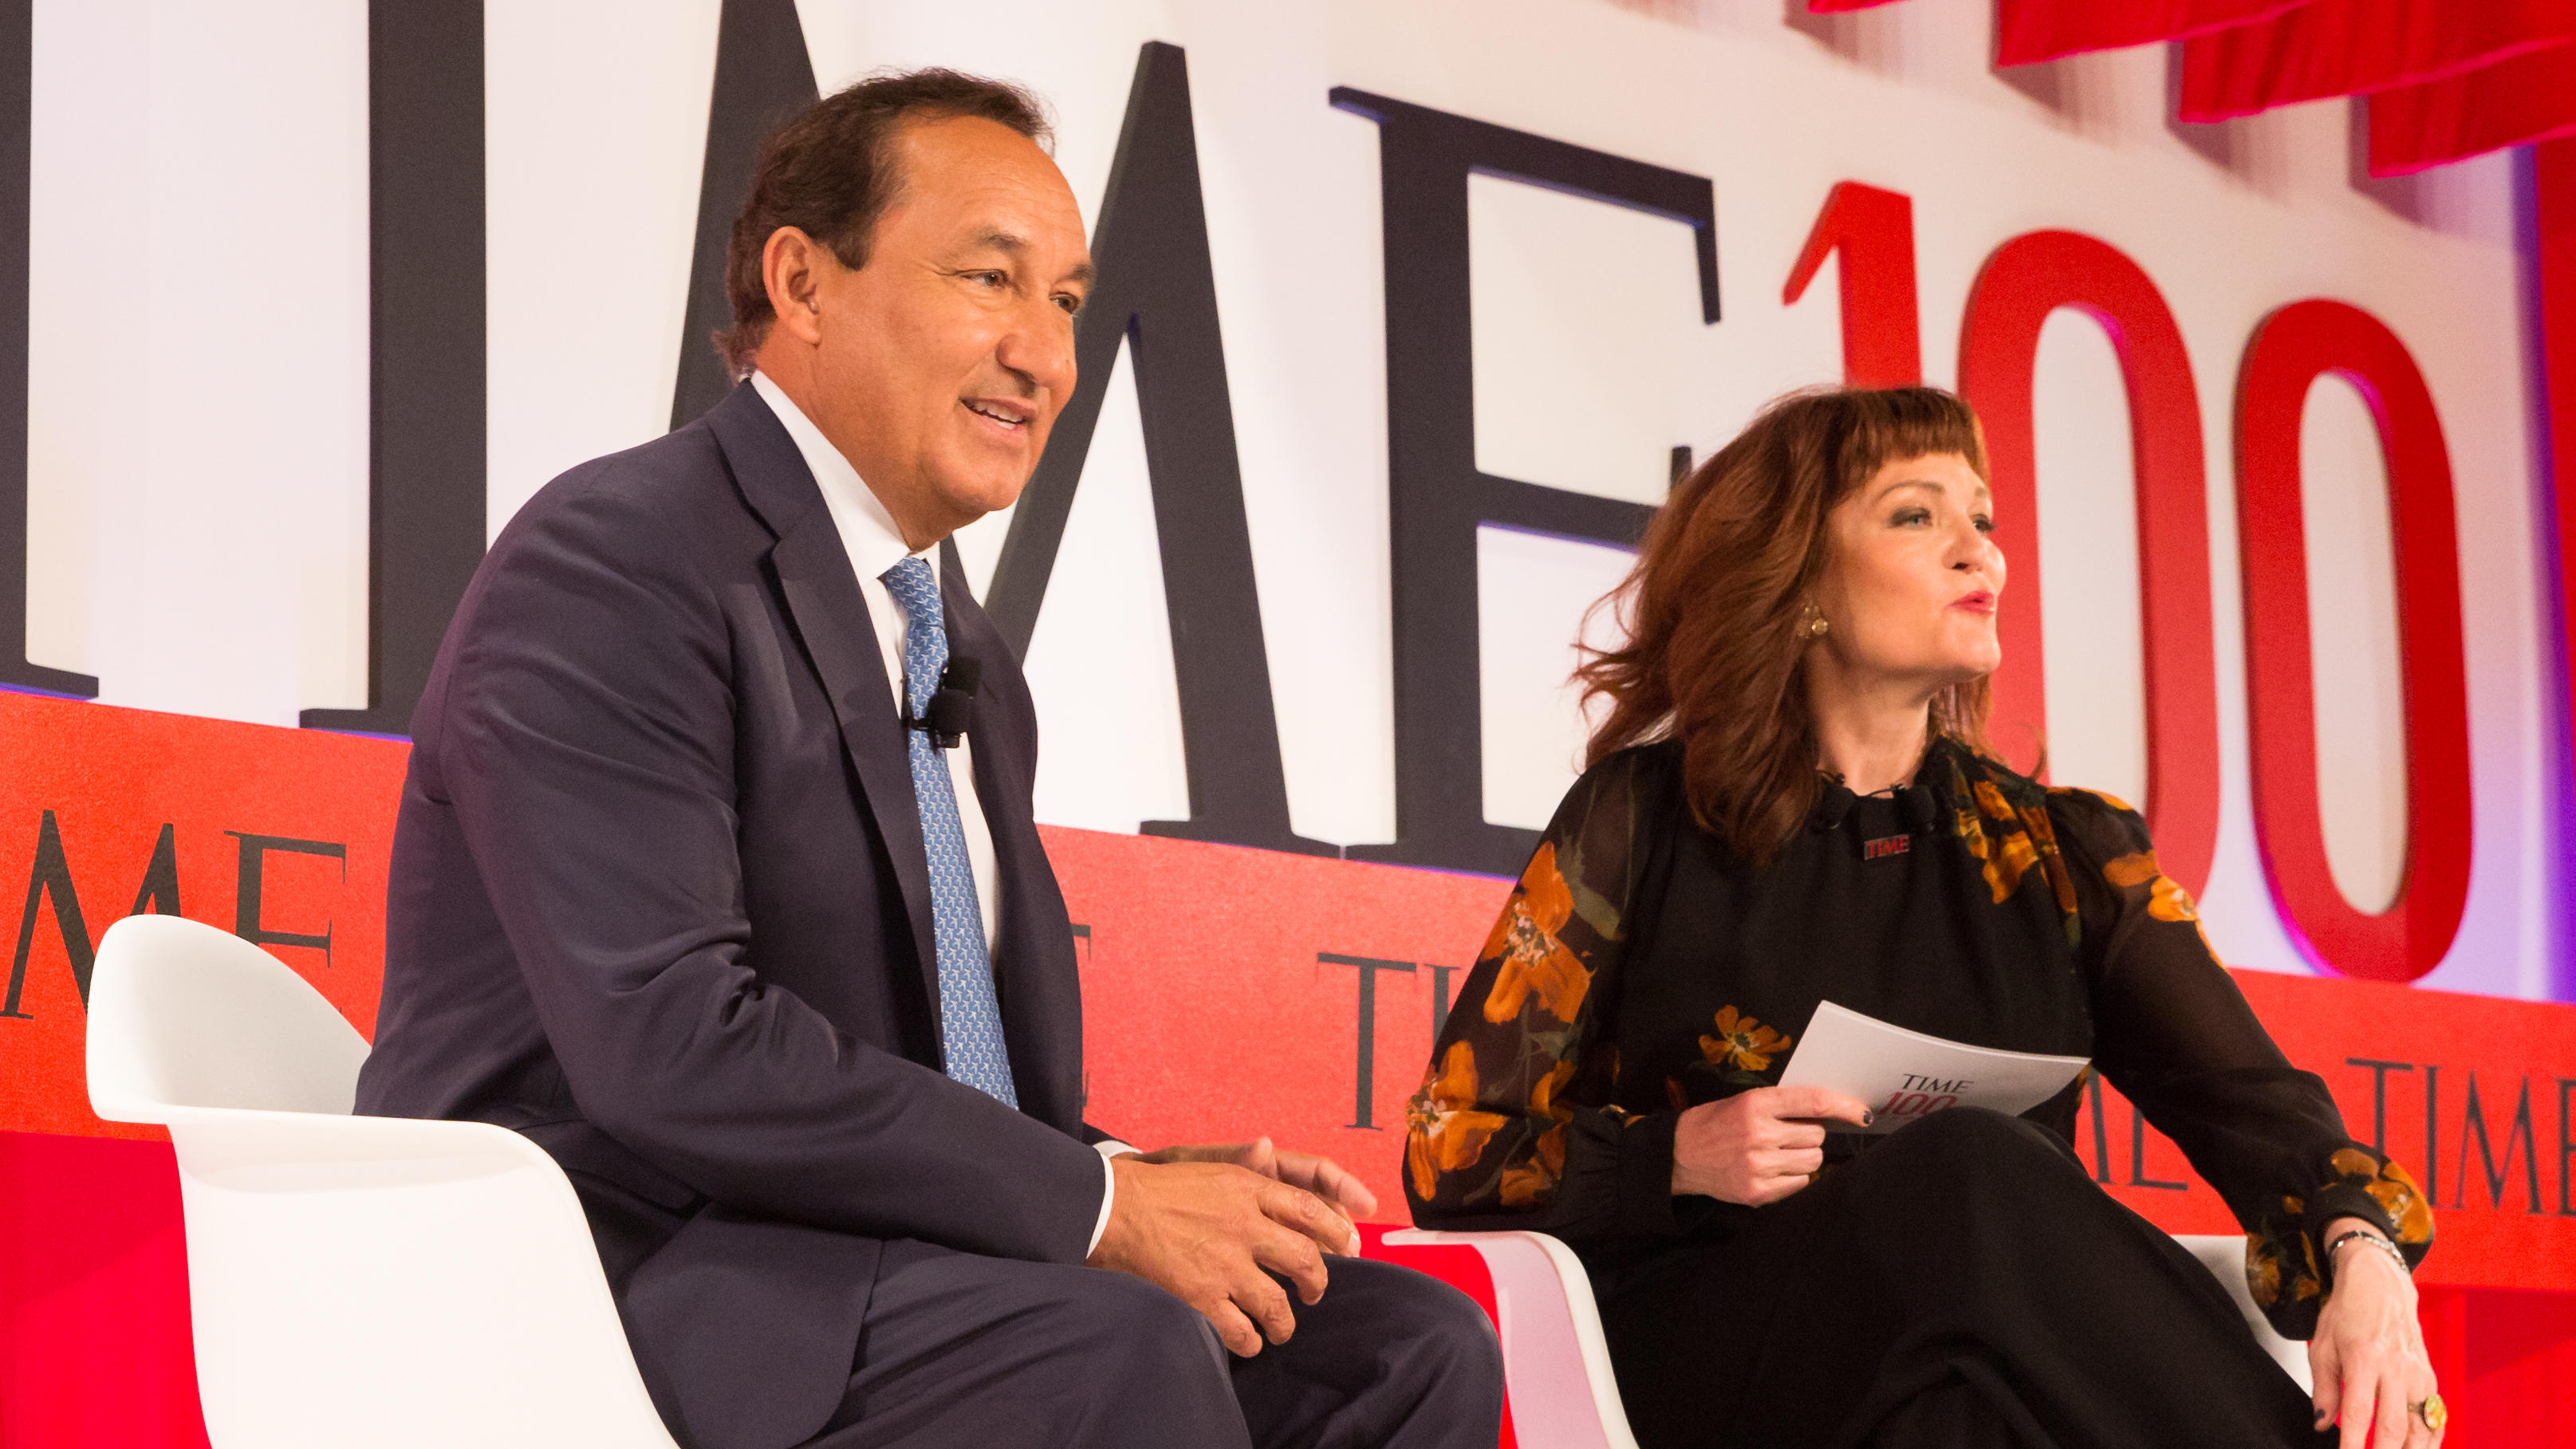 Time 100 summit NYC 2019